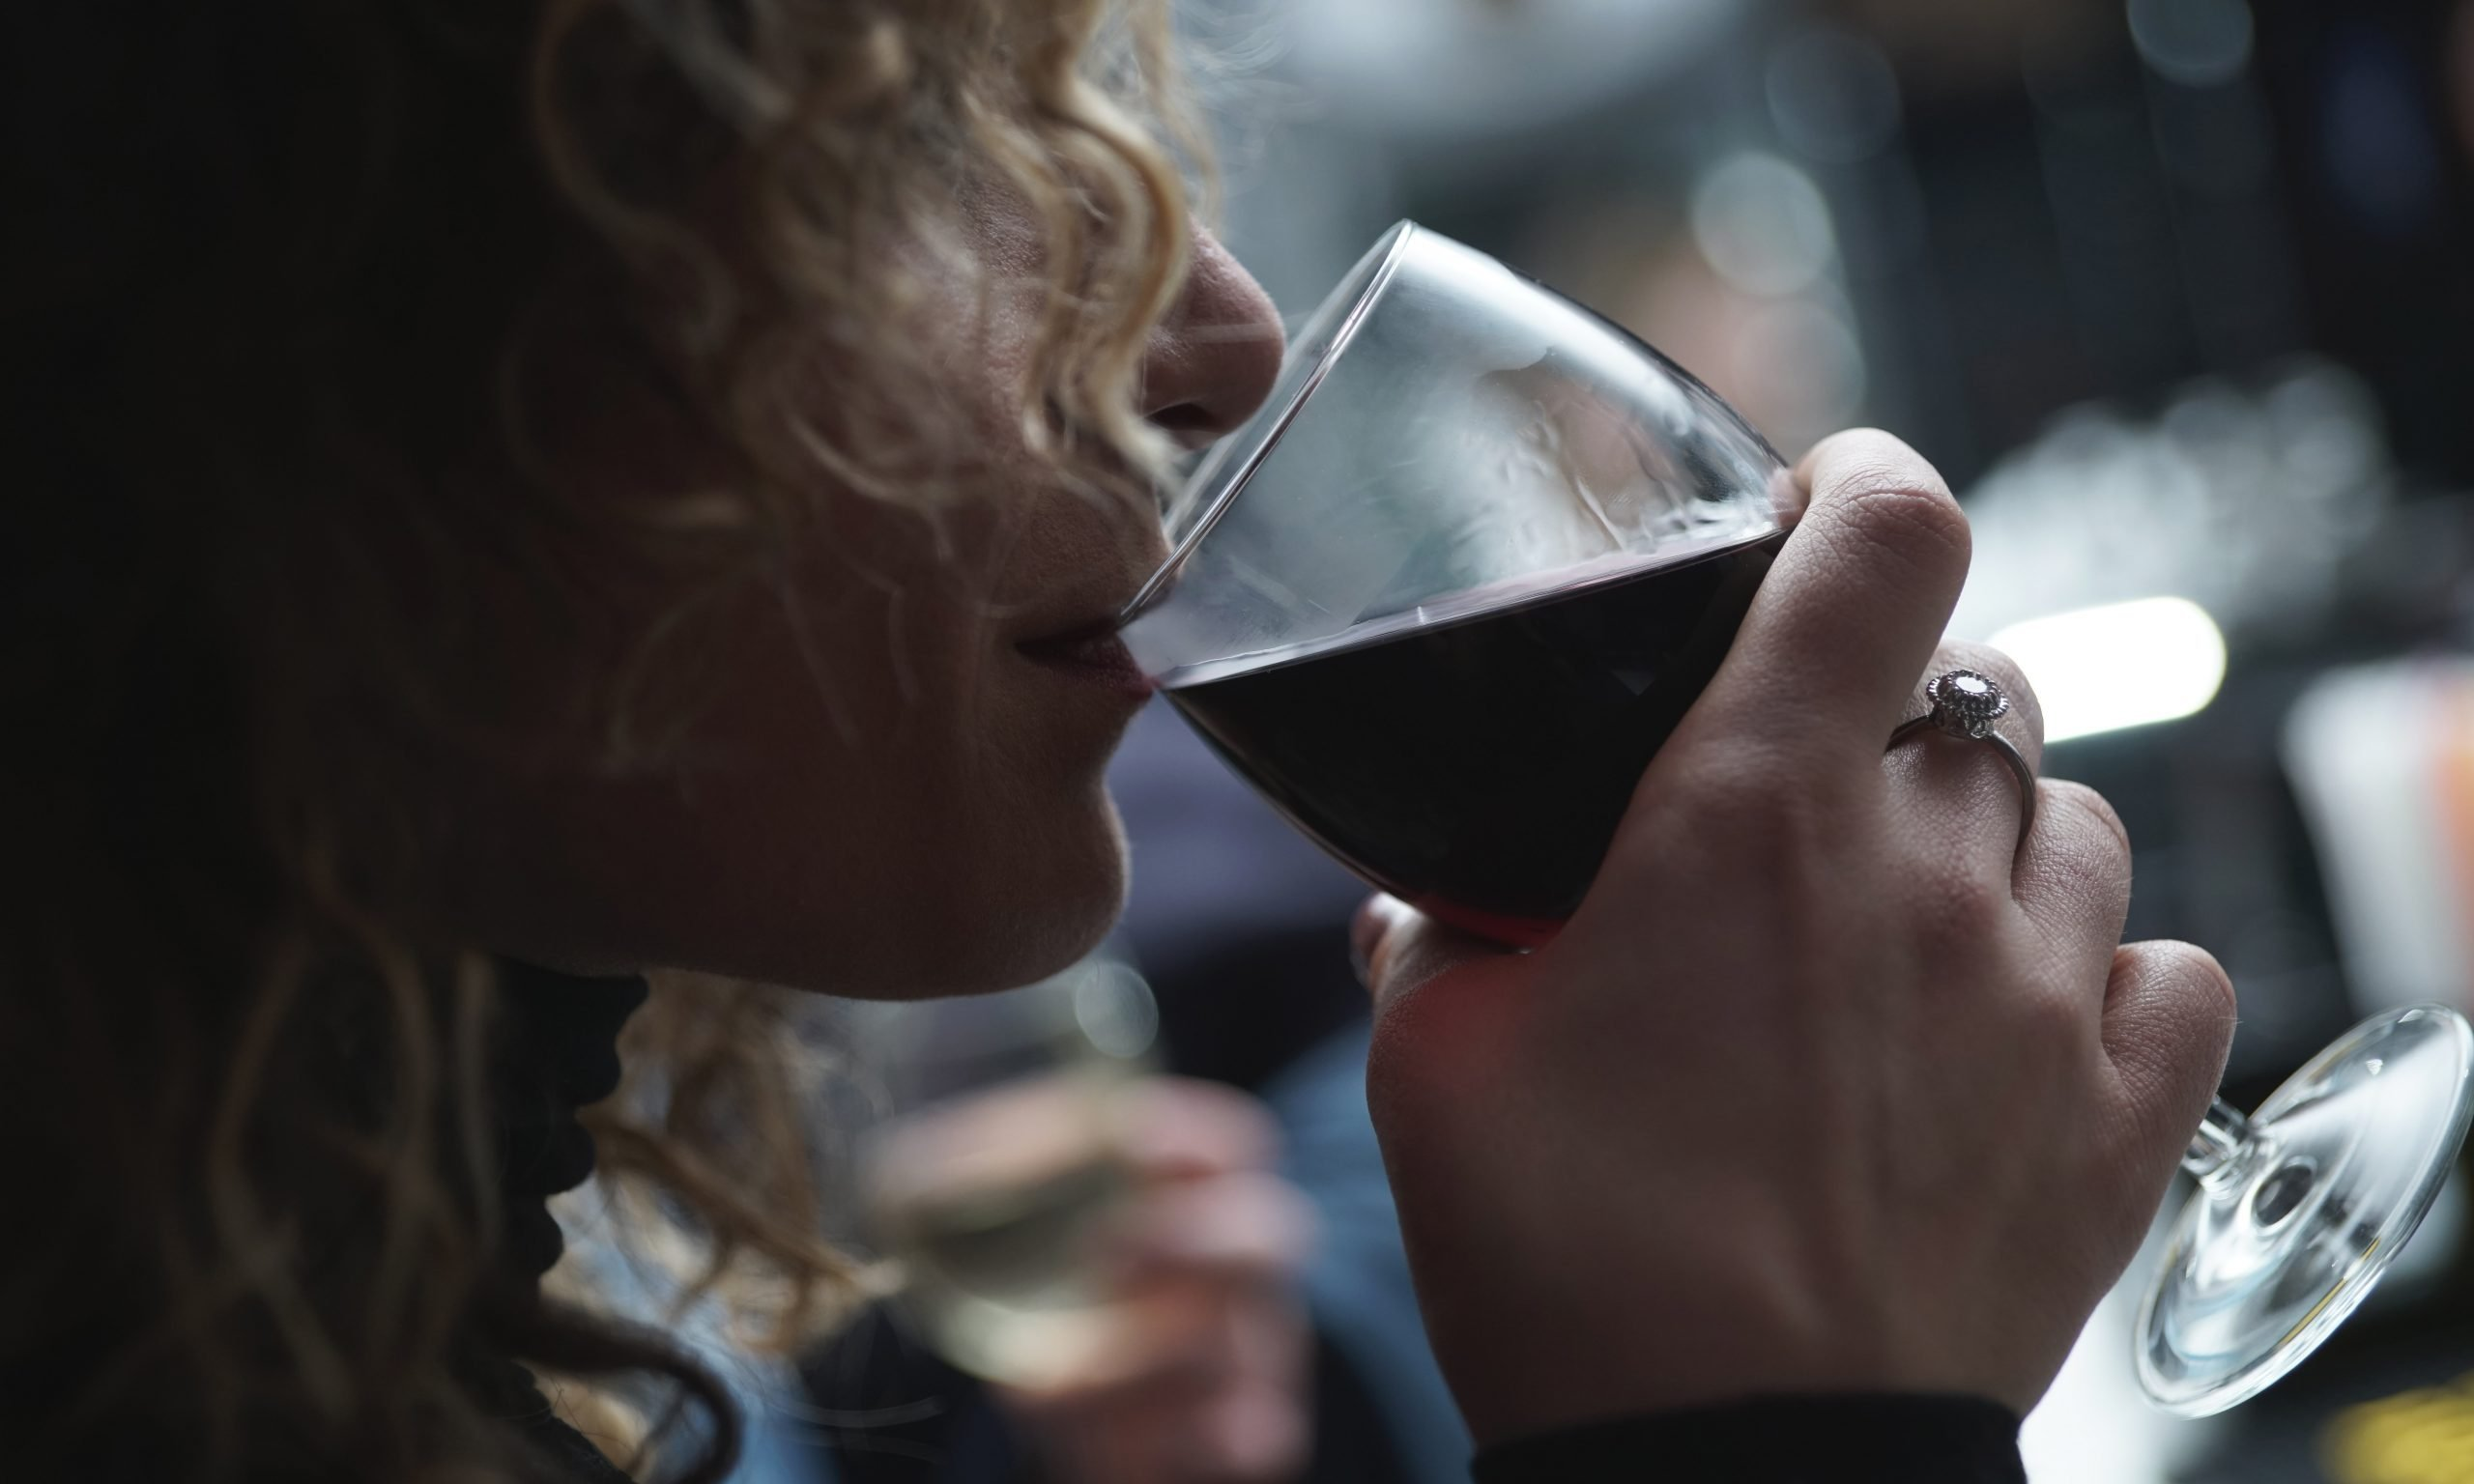 alcohol ban woman drinking wine